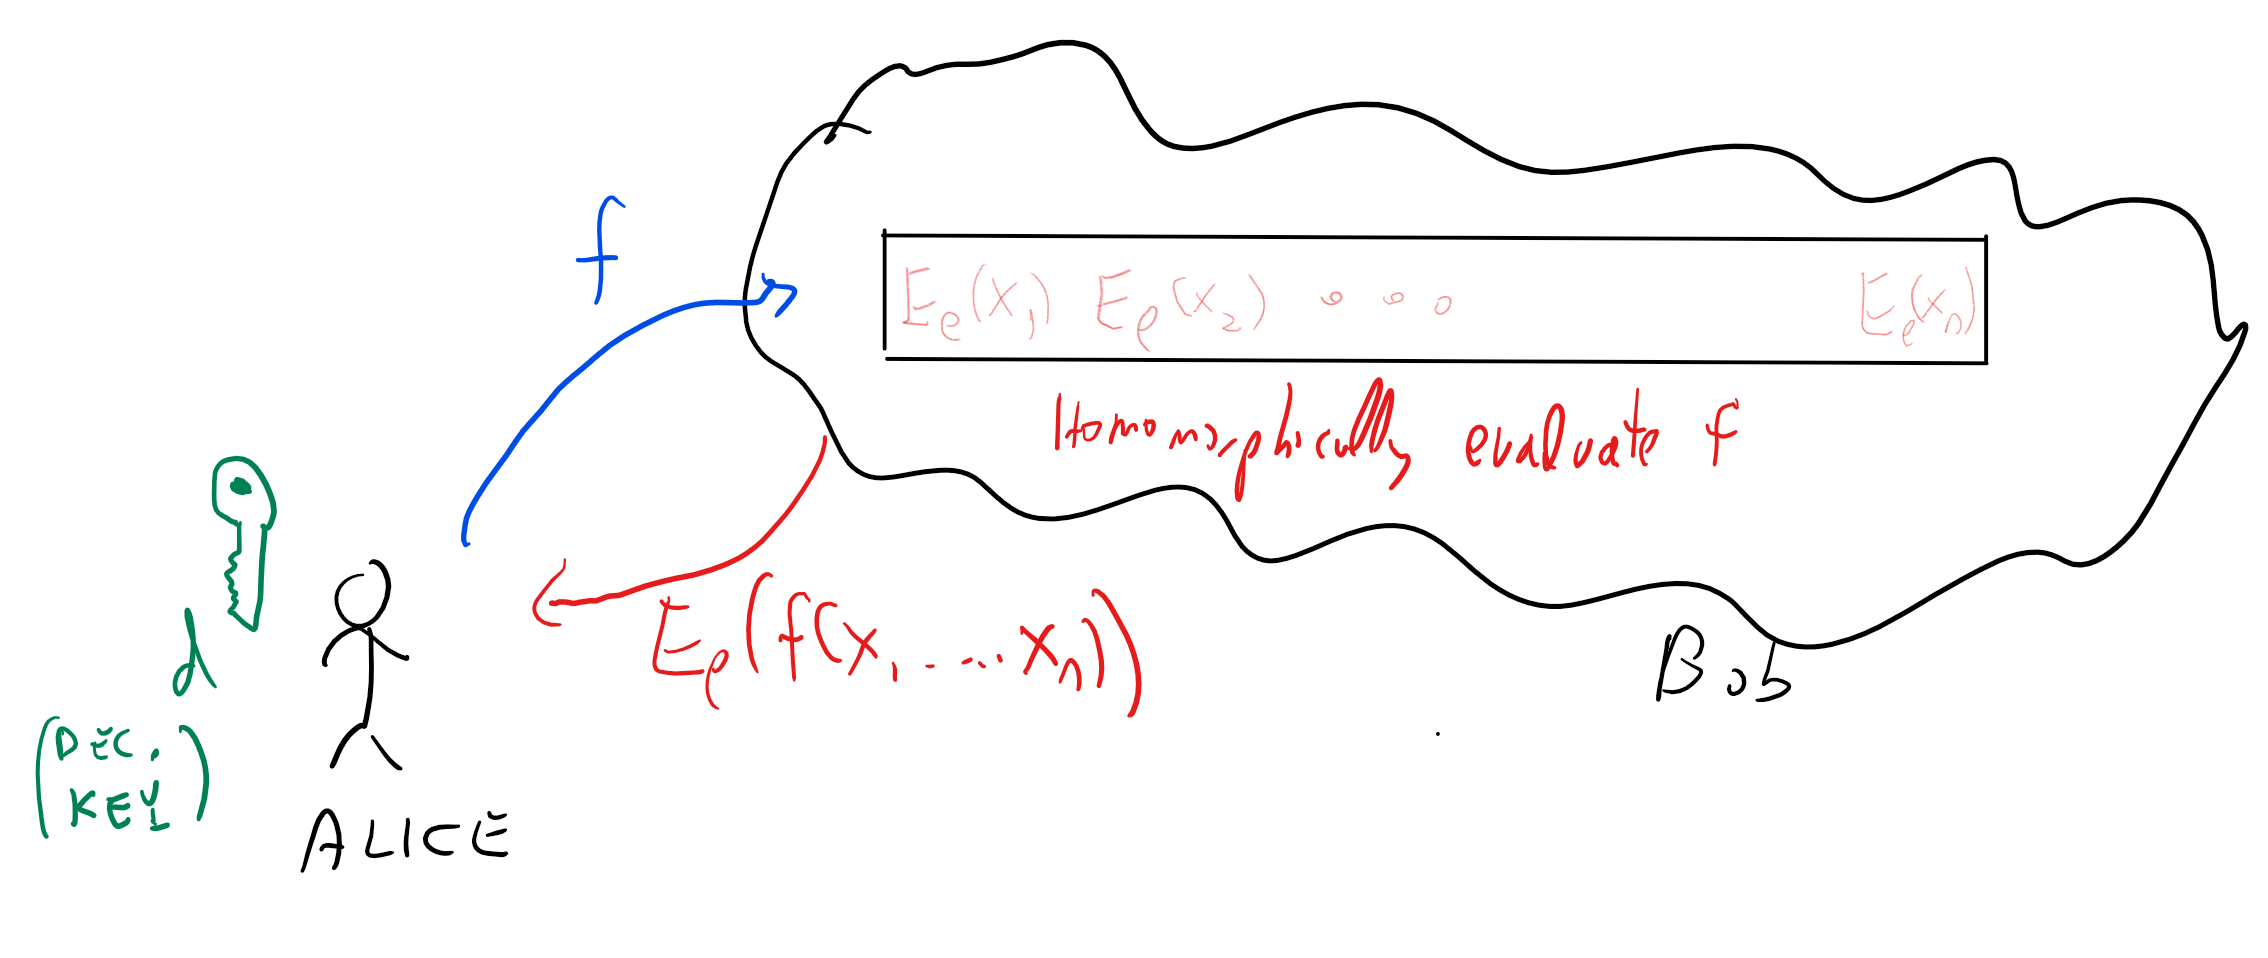 16.1: A fully homomorphic encryption can be used to store data on the cloud in encrypted form, but still have the cloud provider be able to evaluate functions on the data in encrypted form (without ever learning either the inputs or the outputs of the function they evaluate).